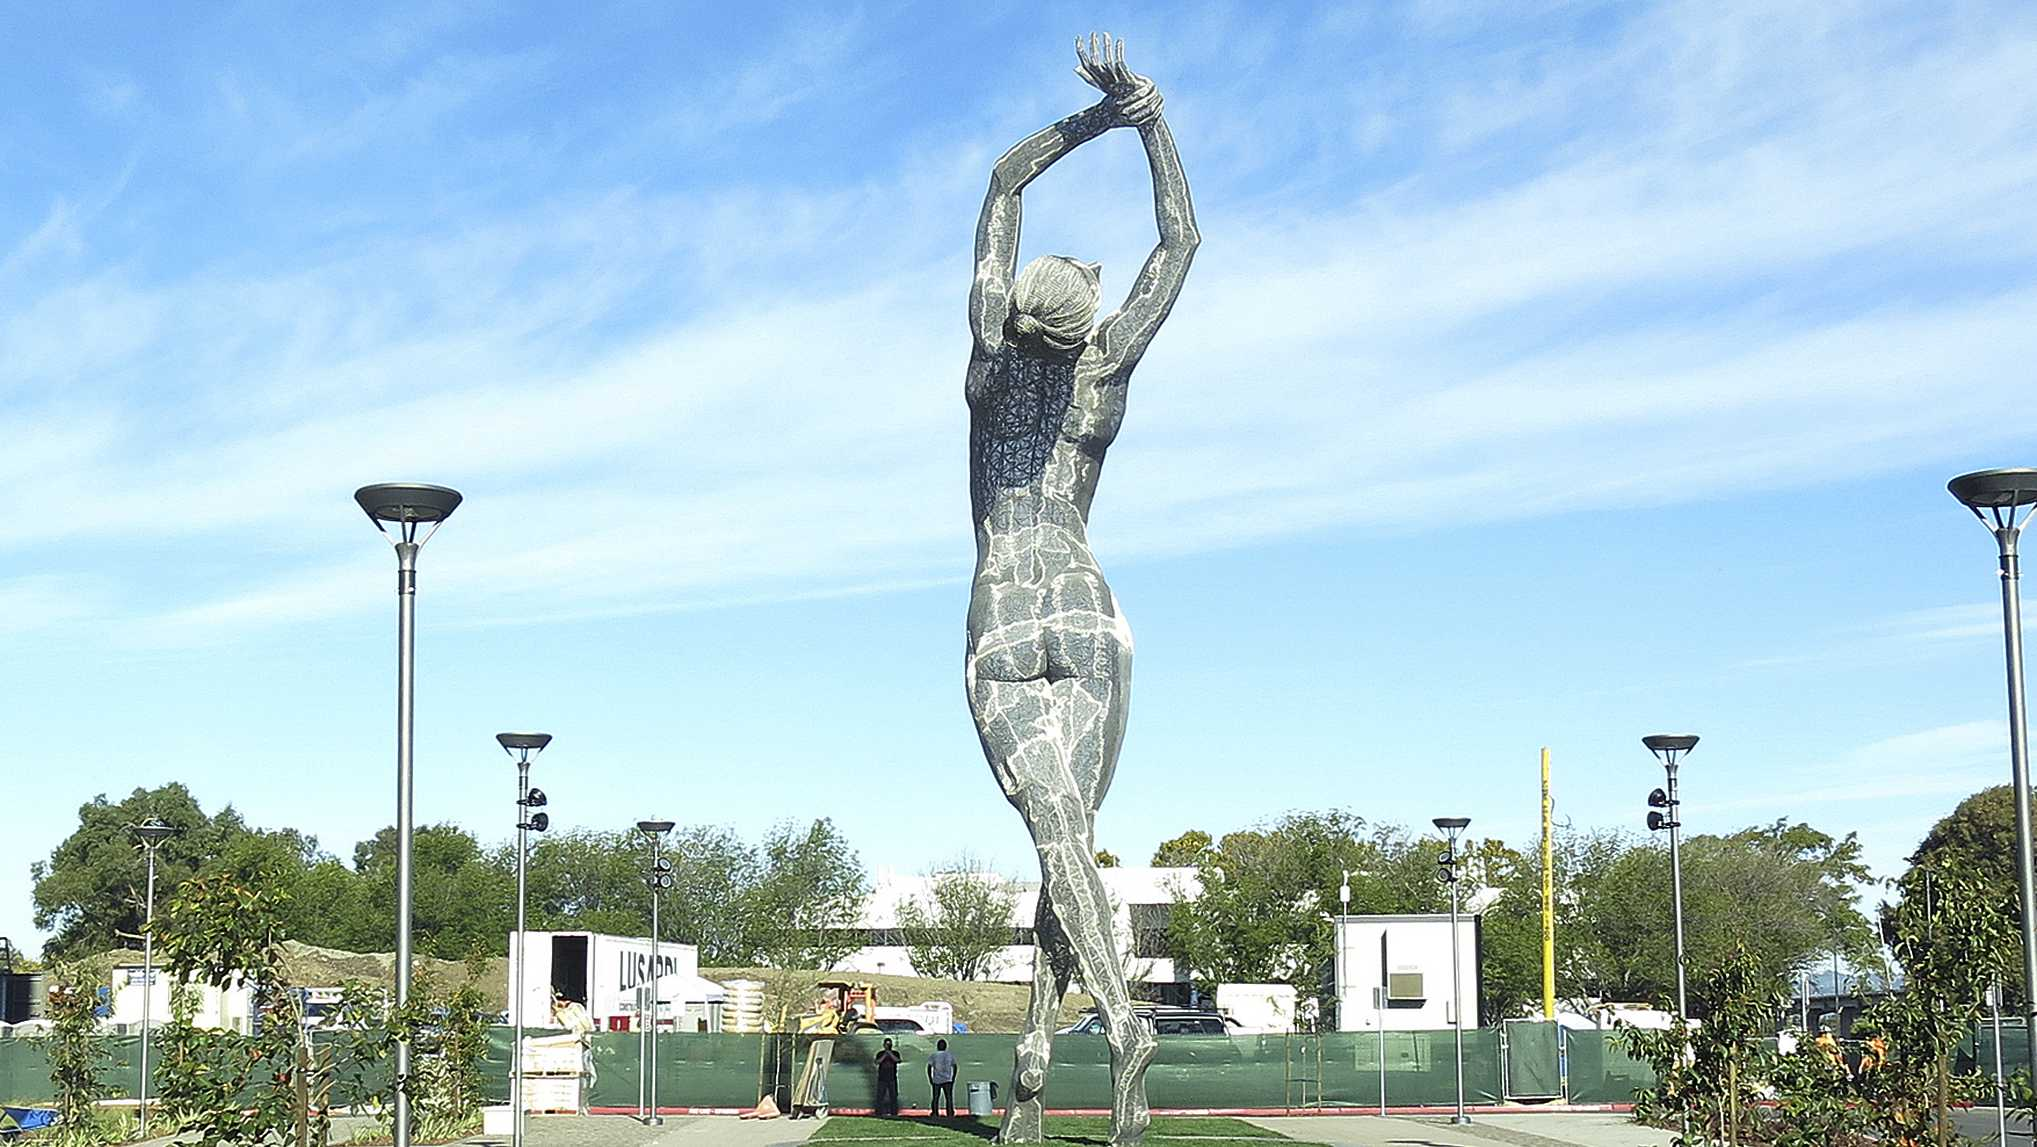 A 55-foot nude statue stands in San Leandro, Calif.